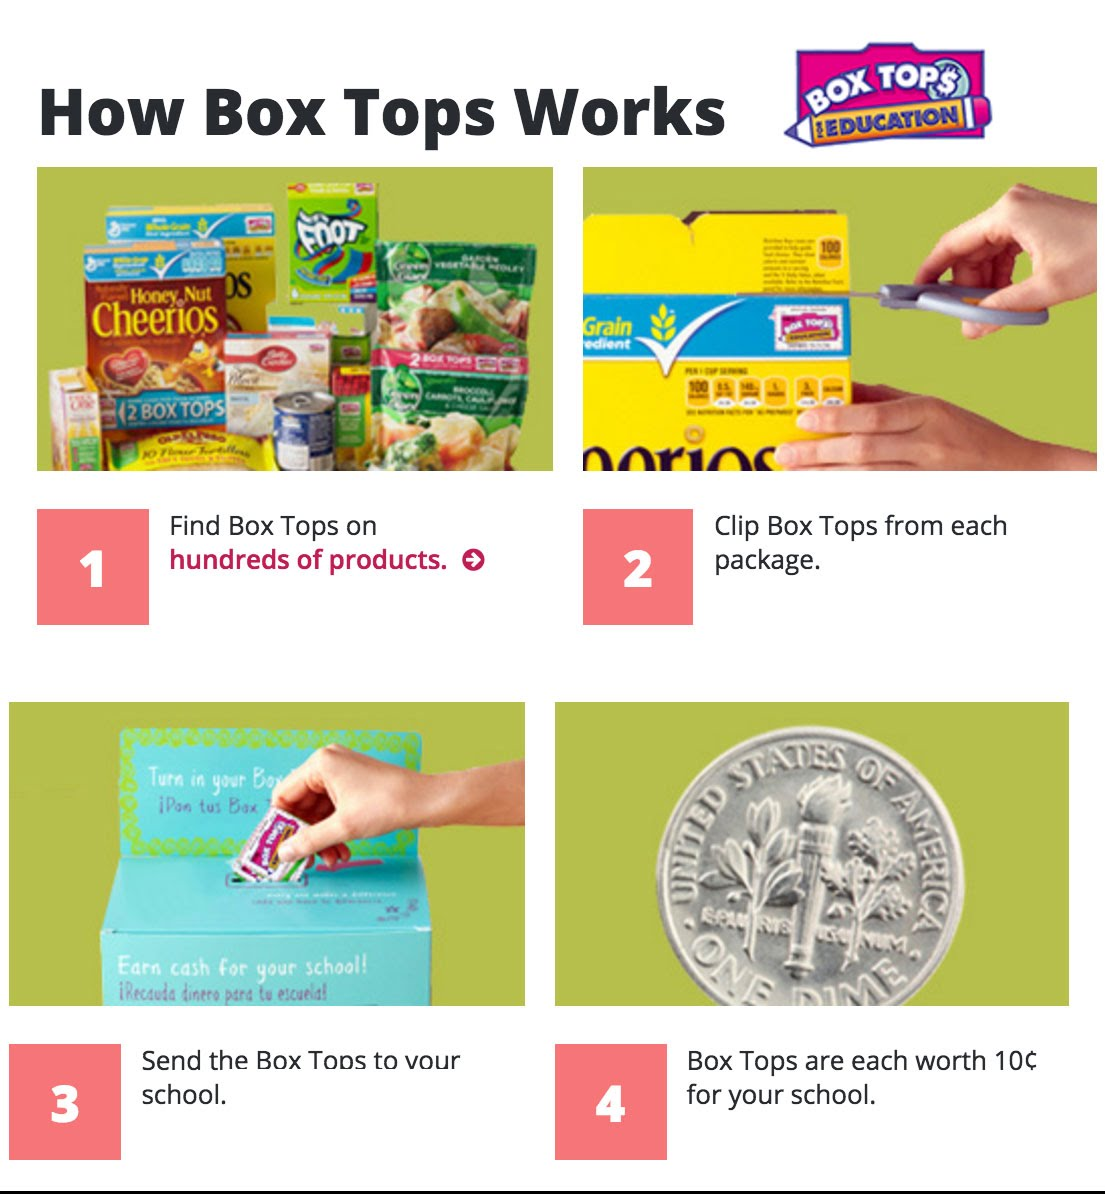 Boxtops4education contests sweepstakes